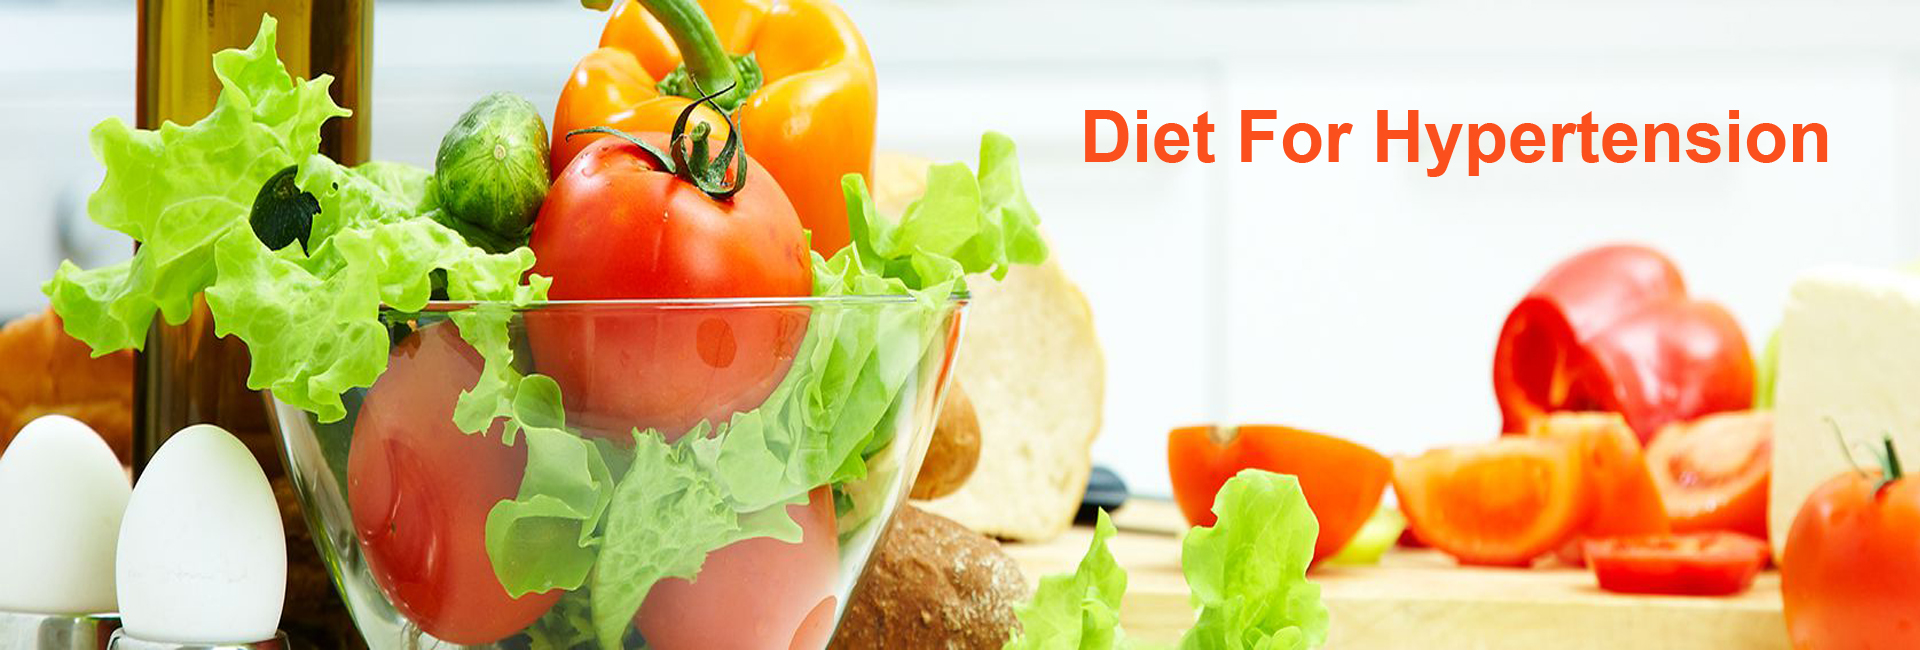 Diet For Hypertension In Saint-raymond